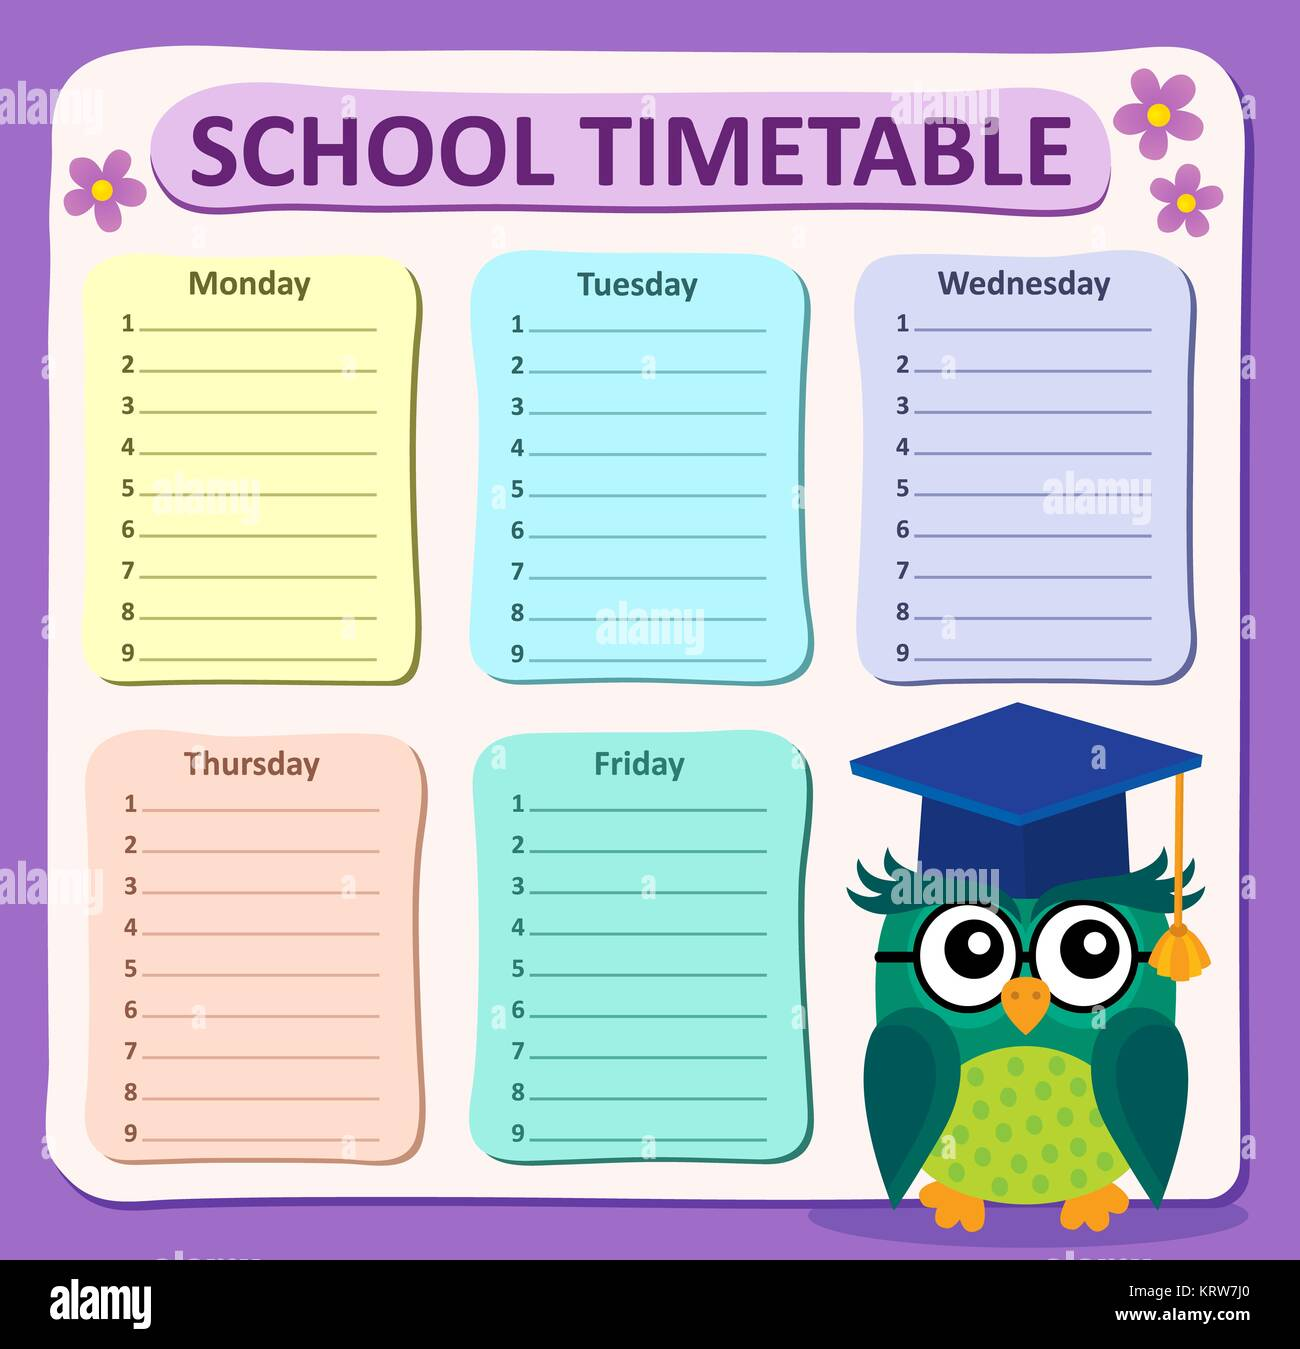 School Time Table Chart Stock Photos & School Time Table Chart Stock ...